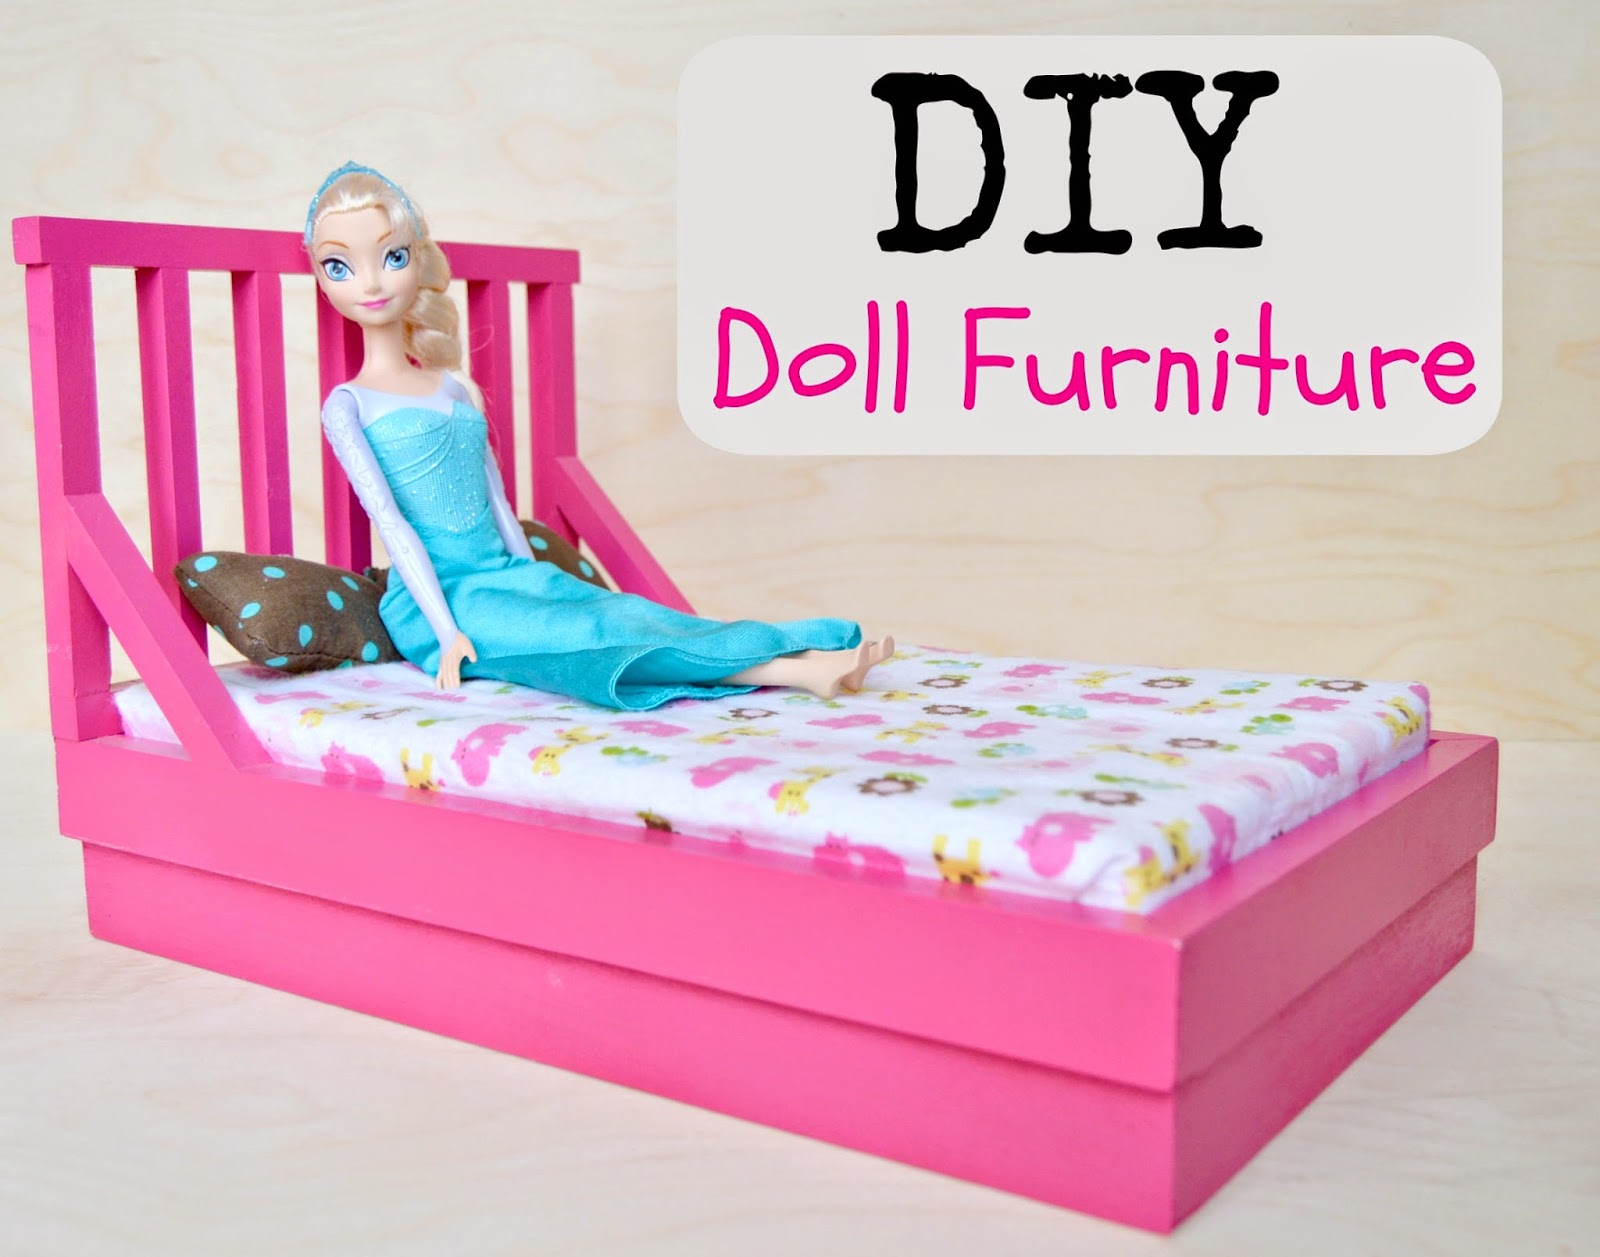 homemade barbie furniture ideas. Simple Homemade DIY Dollhouse Furniture Intended Homemade Barbie Ideas I